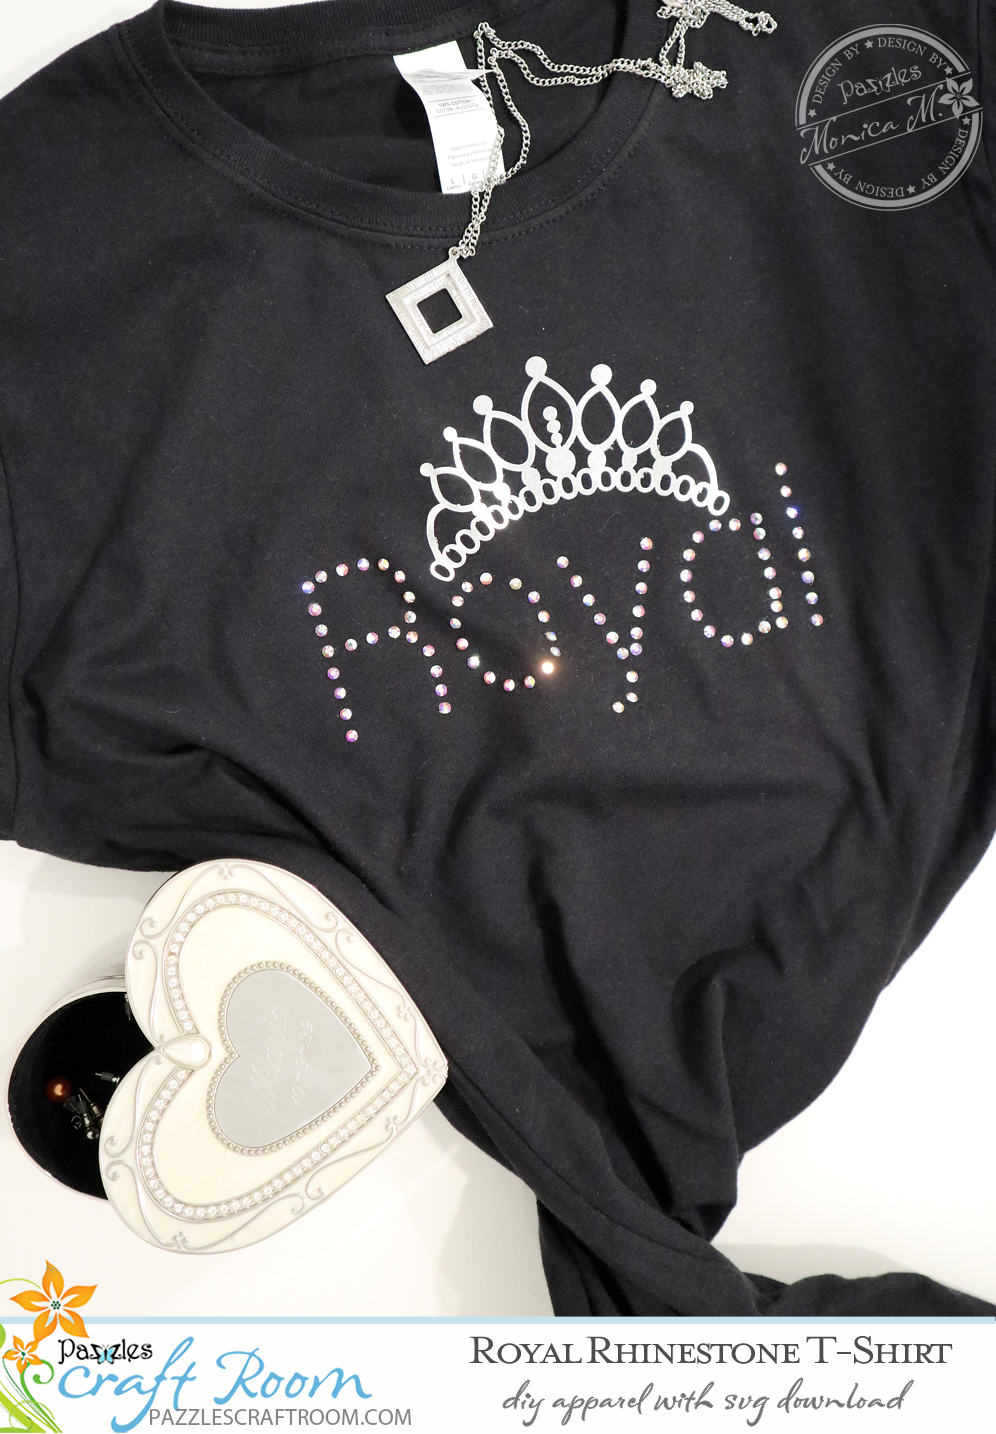 Pazzles DIY Royal Tee rhinestone shirt with instant SVG download. Compatible with all major electronic cutters including Pazzles Inspiration, Cricut, and Silhouette Cameo. Design by Monica Martinez.